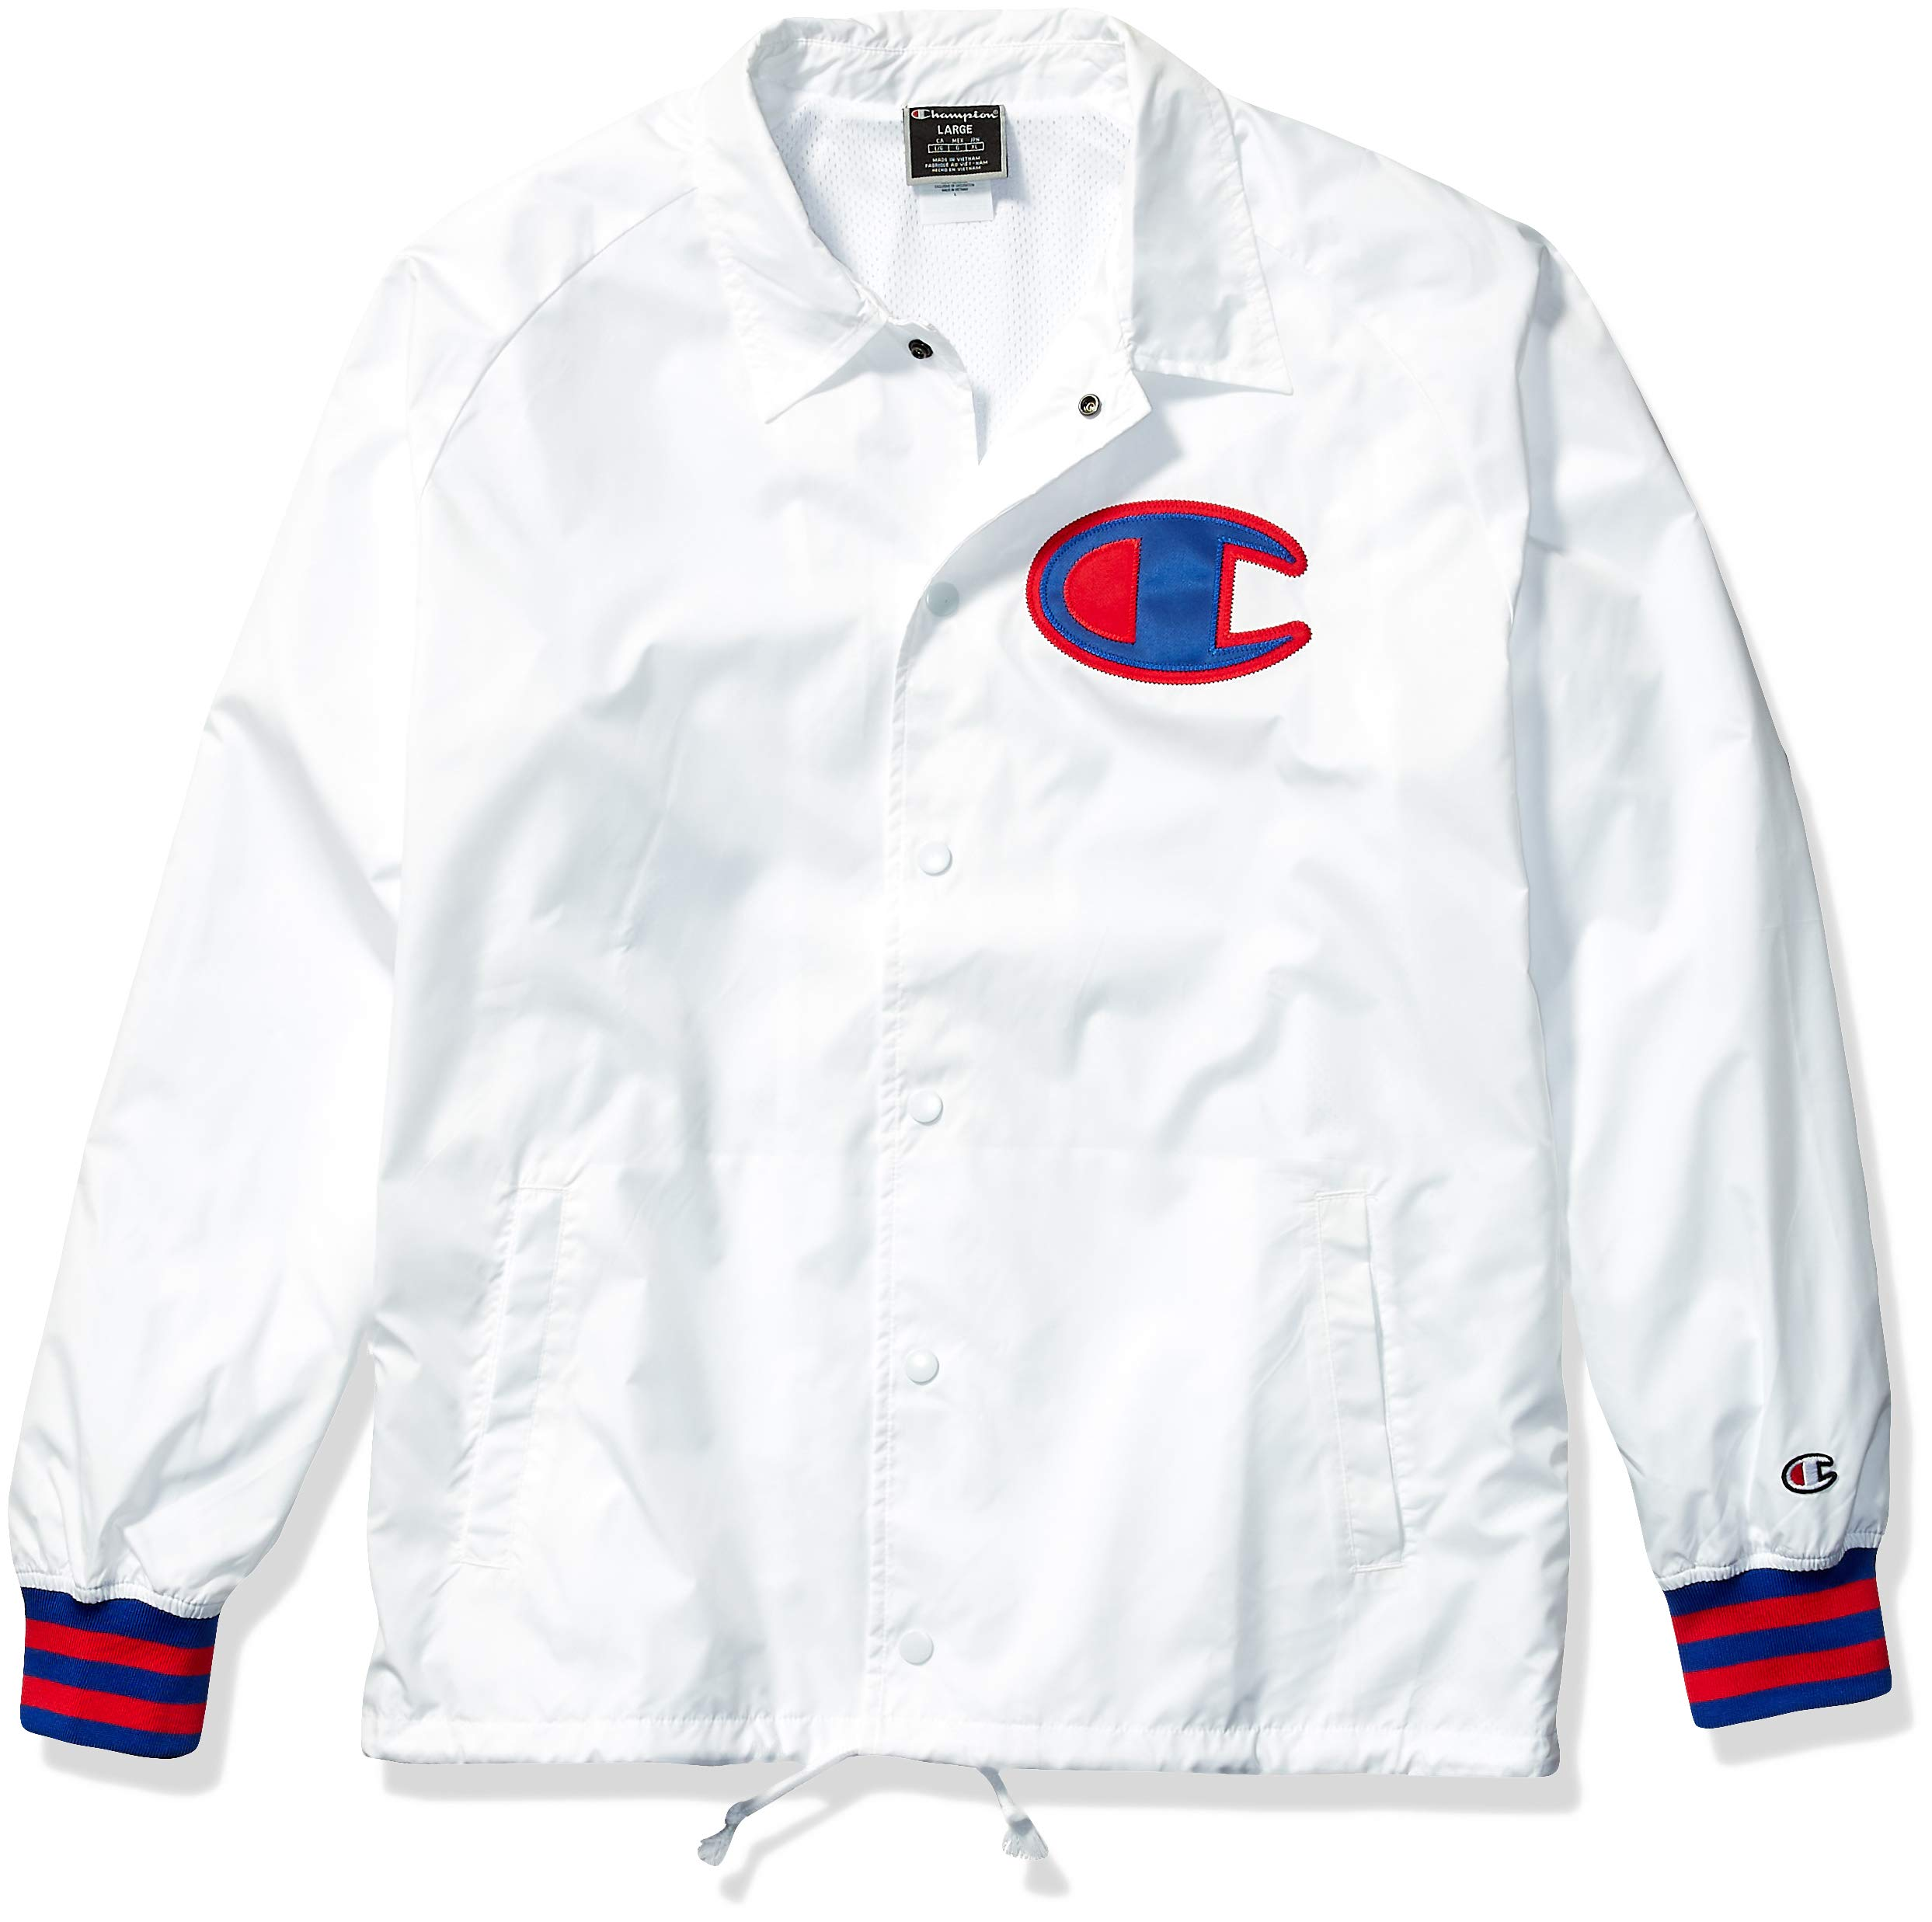 Champion LIFE Men's Satin Coaches Jacket with Ribbed Cuffs, White w/Twill c Logo, X Large by Champion LIFE